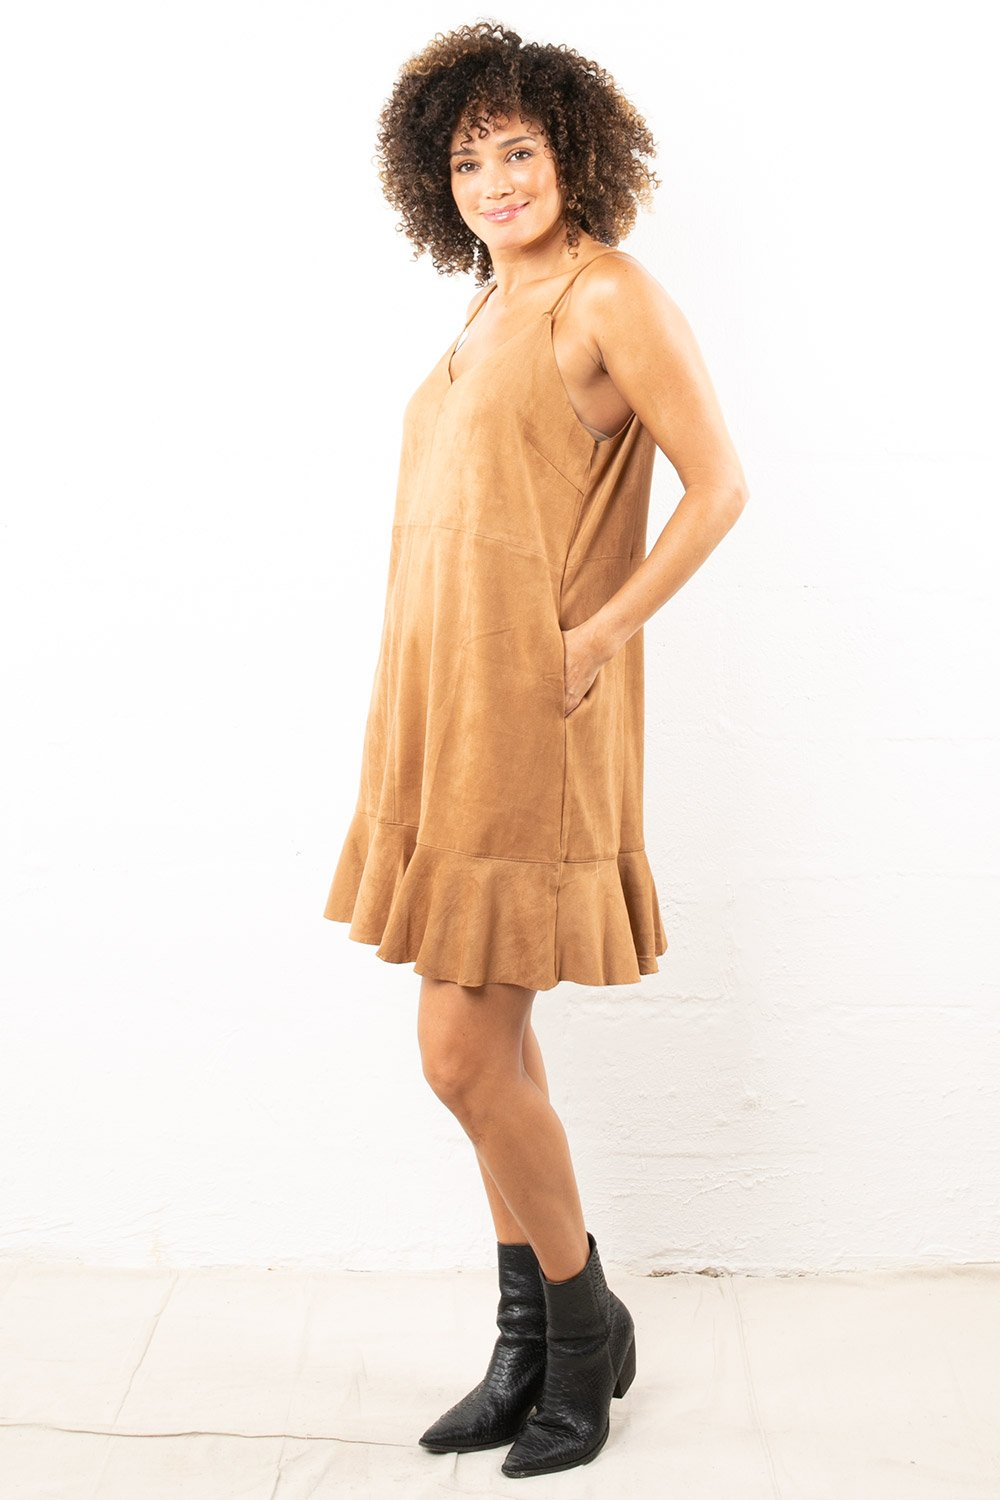 Connor Suede Dress